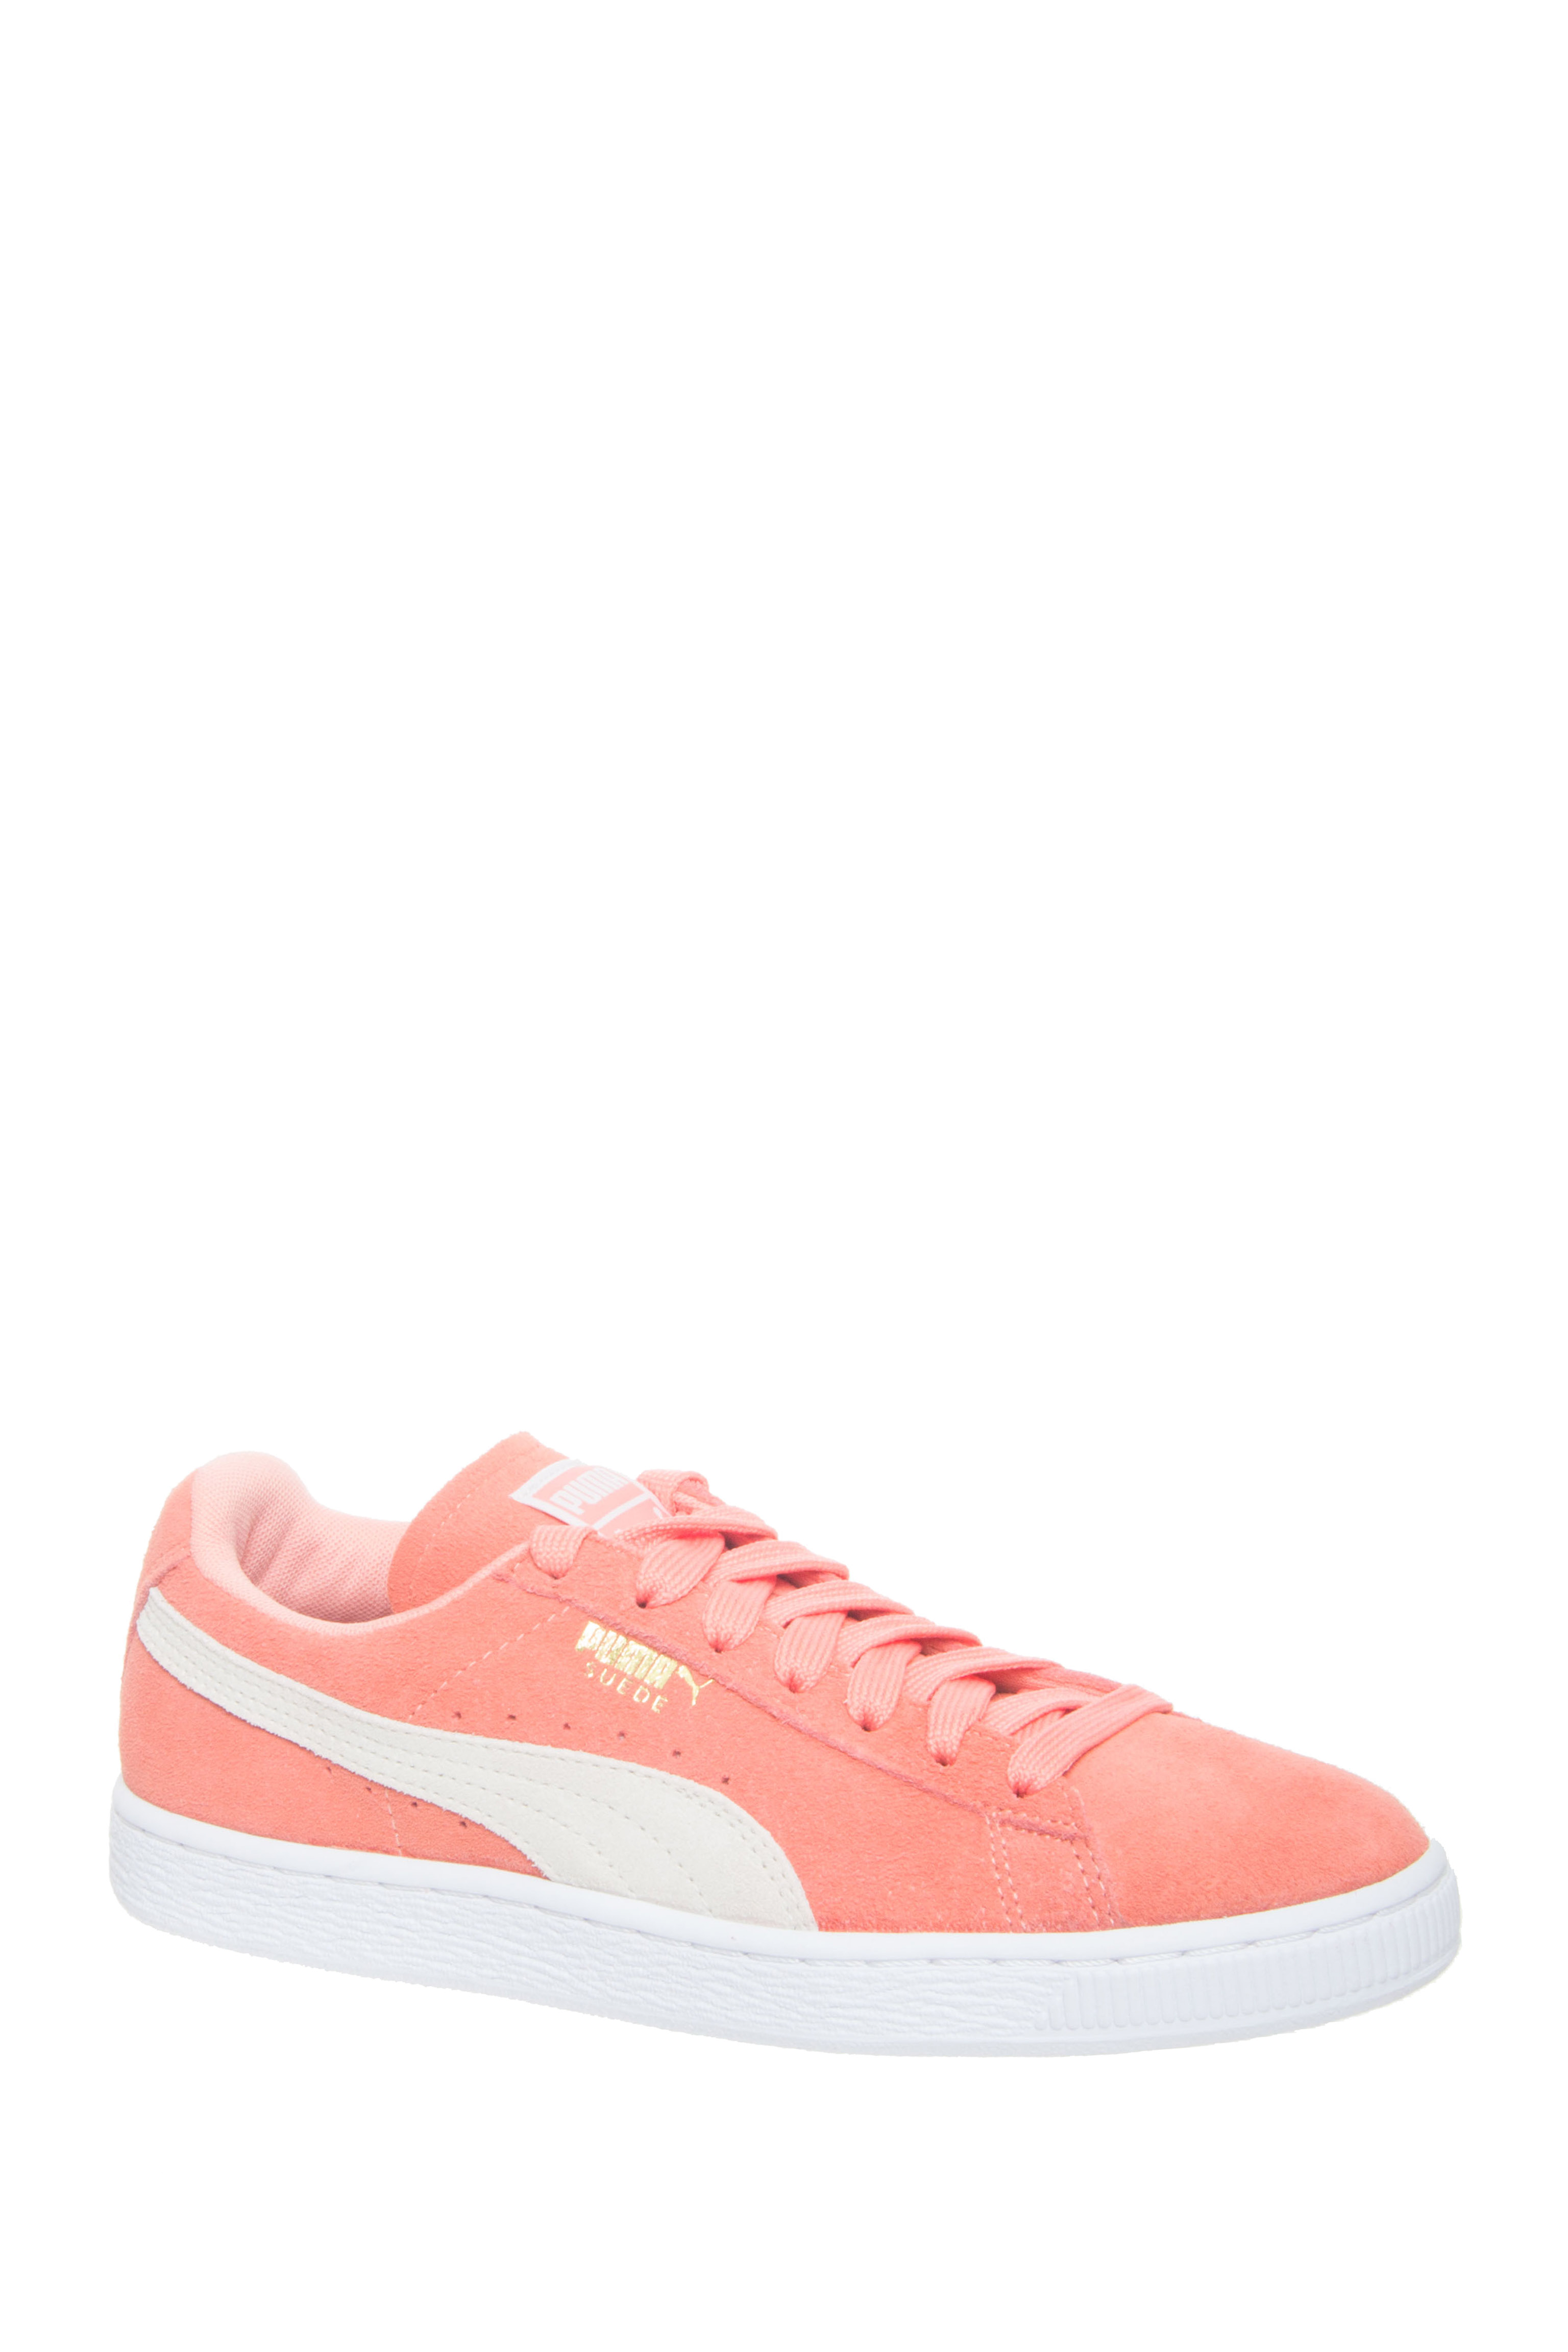 Puma Suede Classic Low Top Sneakers - Desert Flower-White